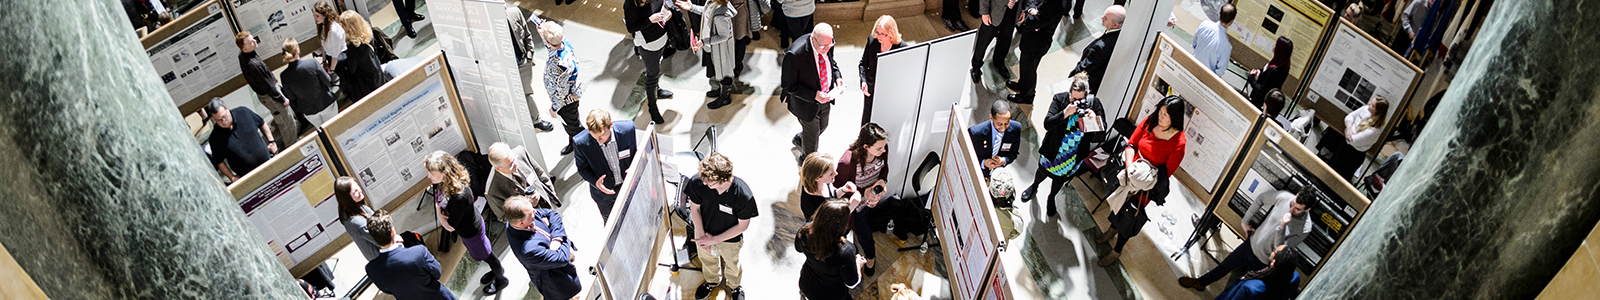 people at Student Research Forum